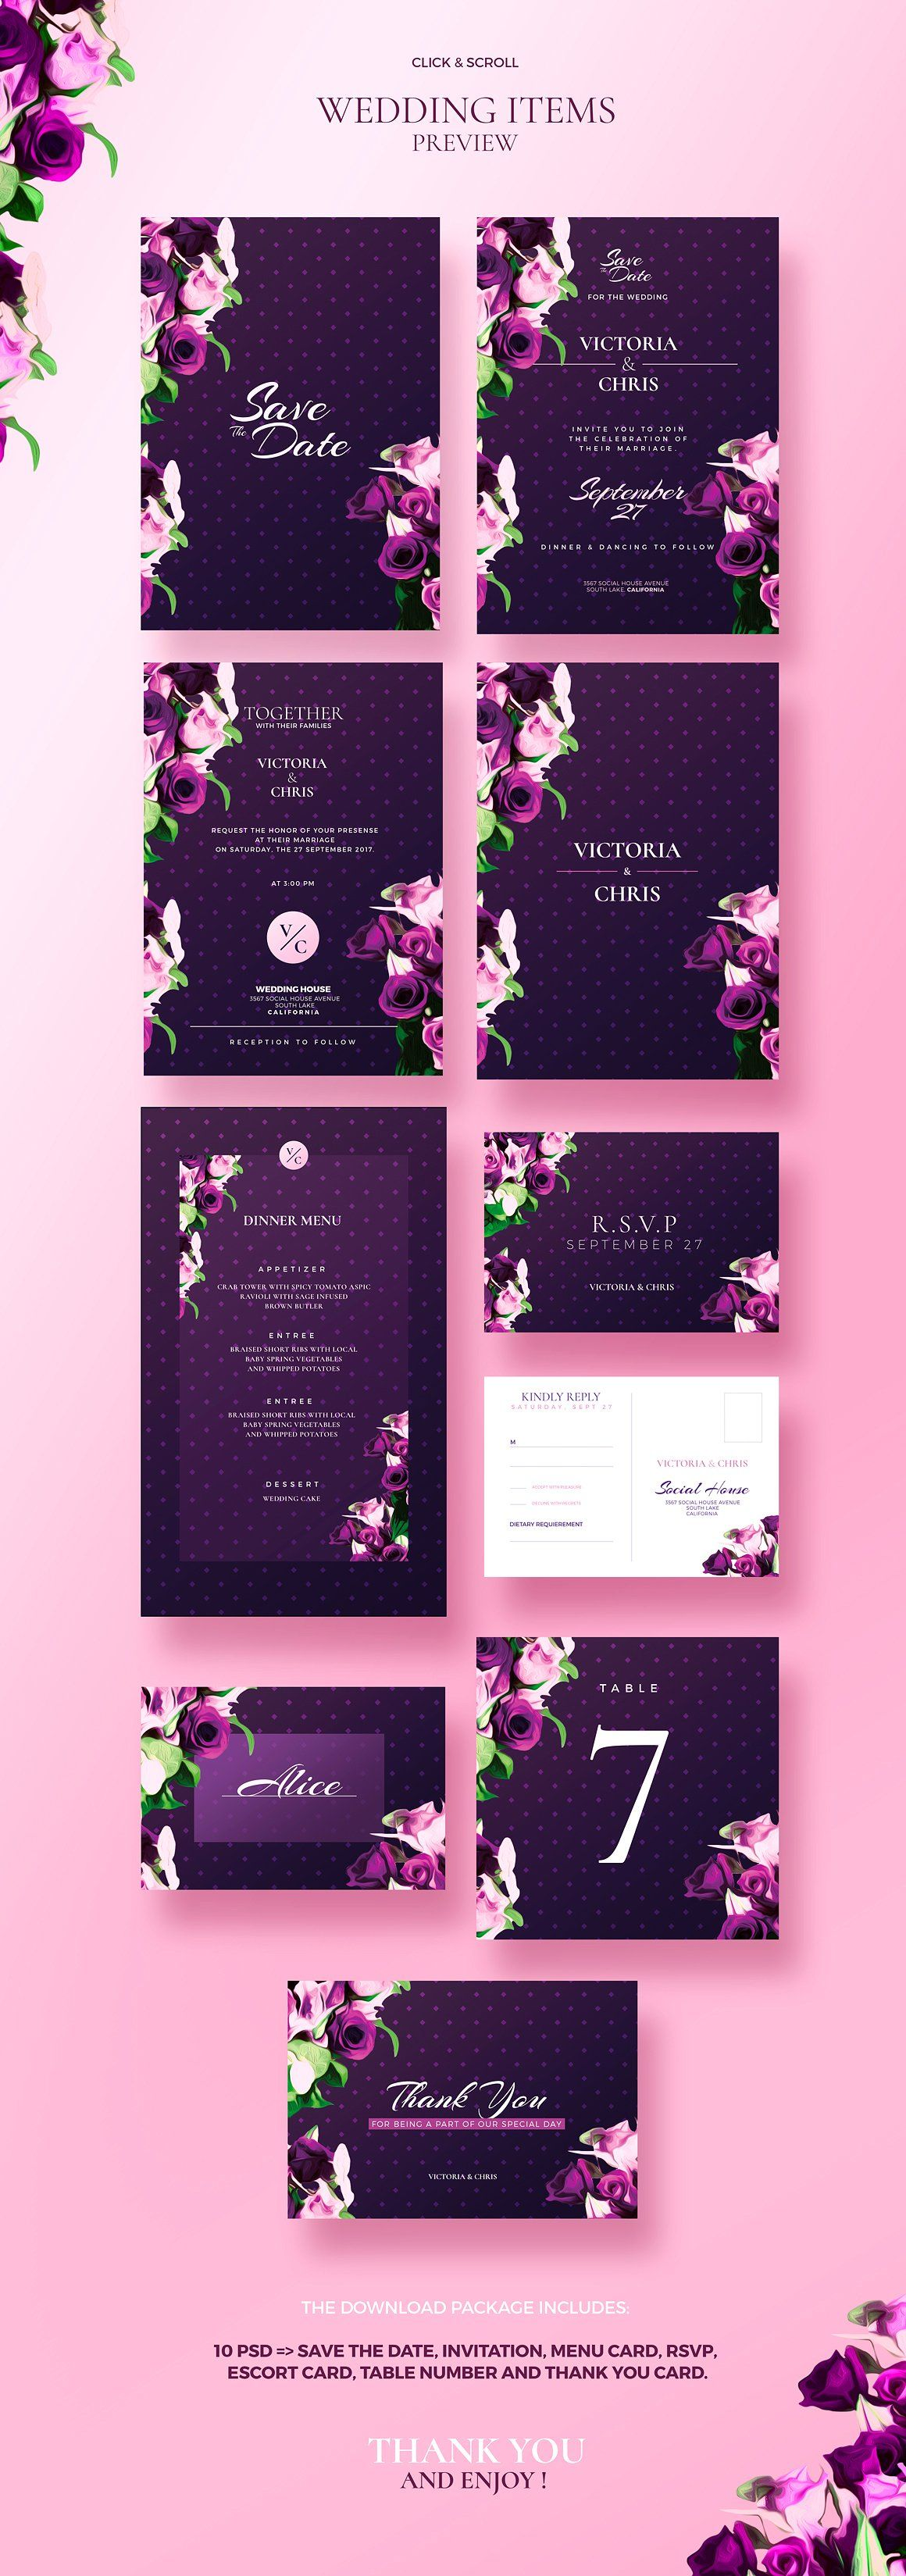 Modern Wedding Collection Invitations Invitations - Save the date flyer template